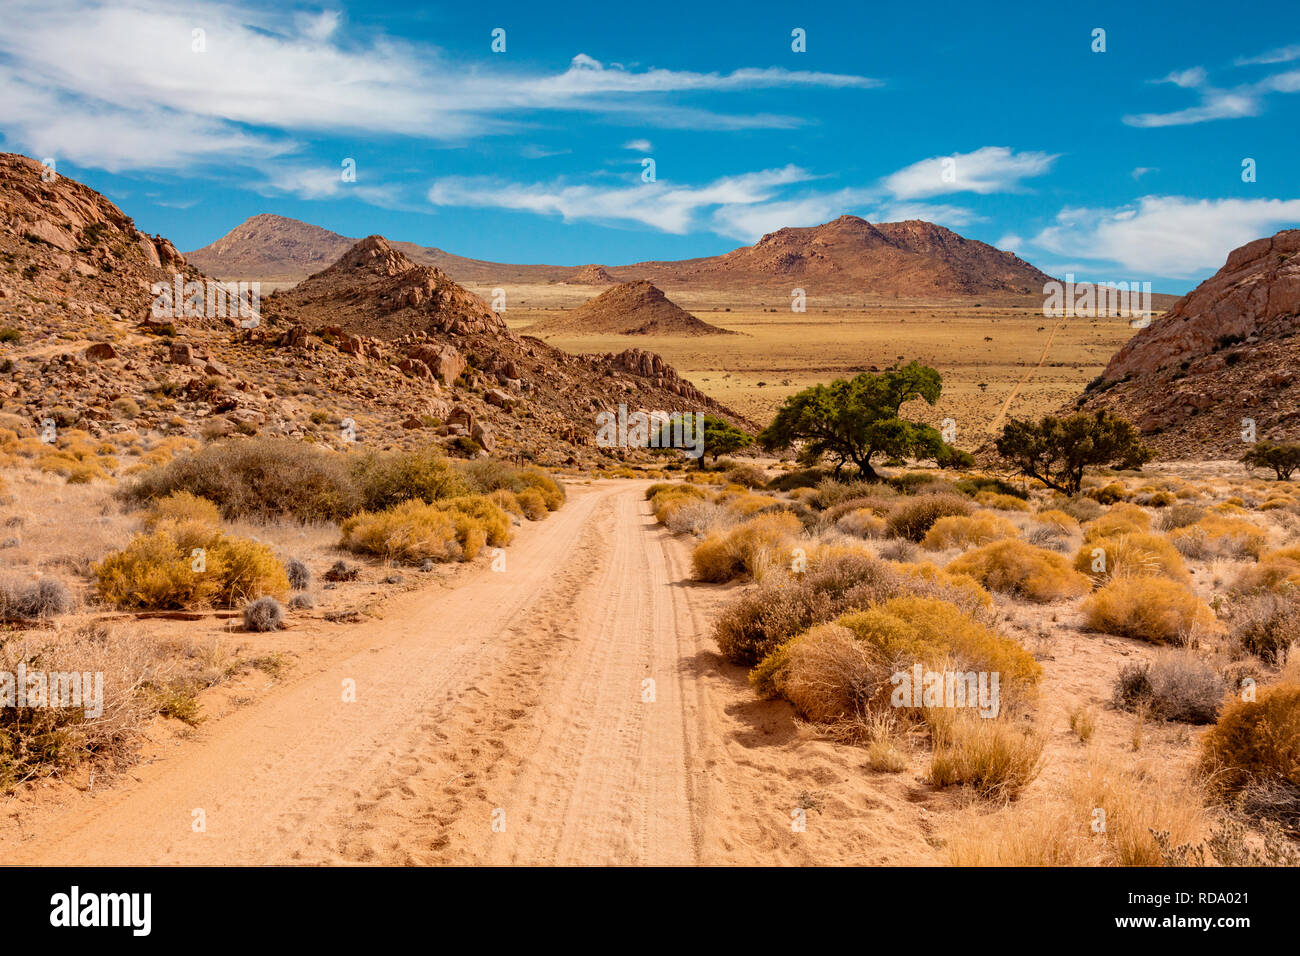 Namibia landscape with unprepared road leading to nowhere. - Stock Image